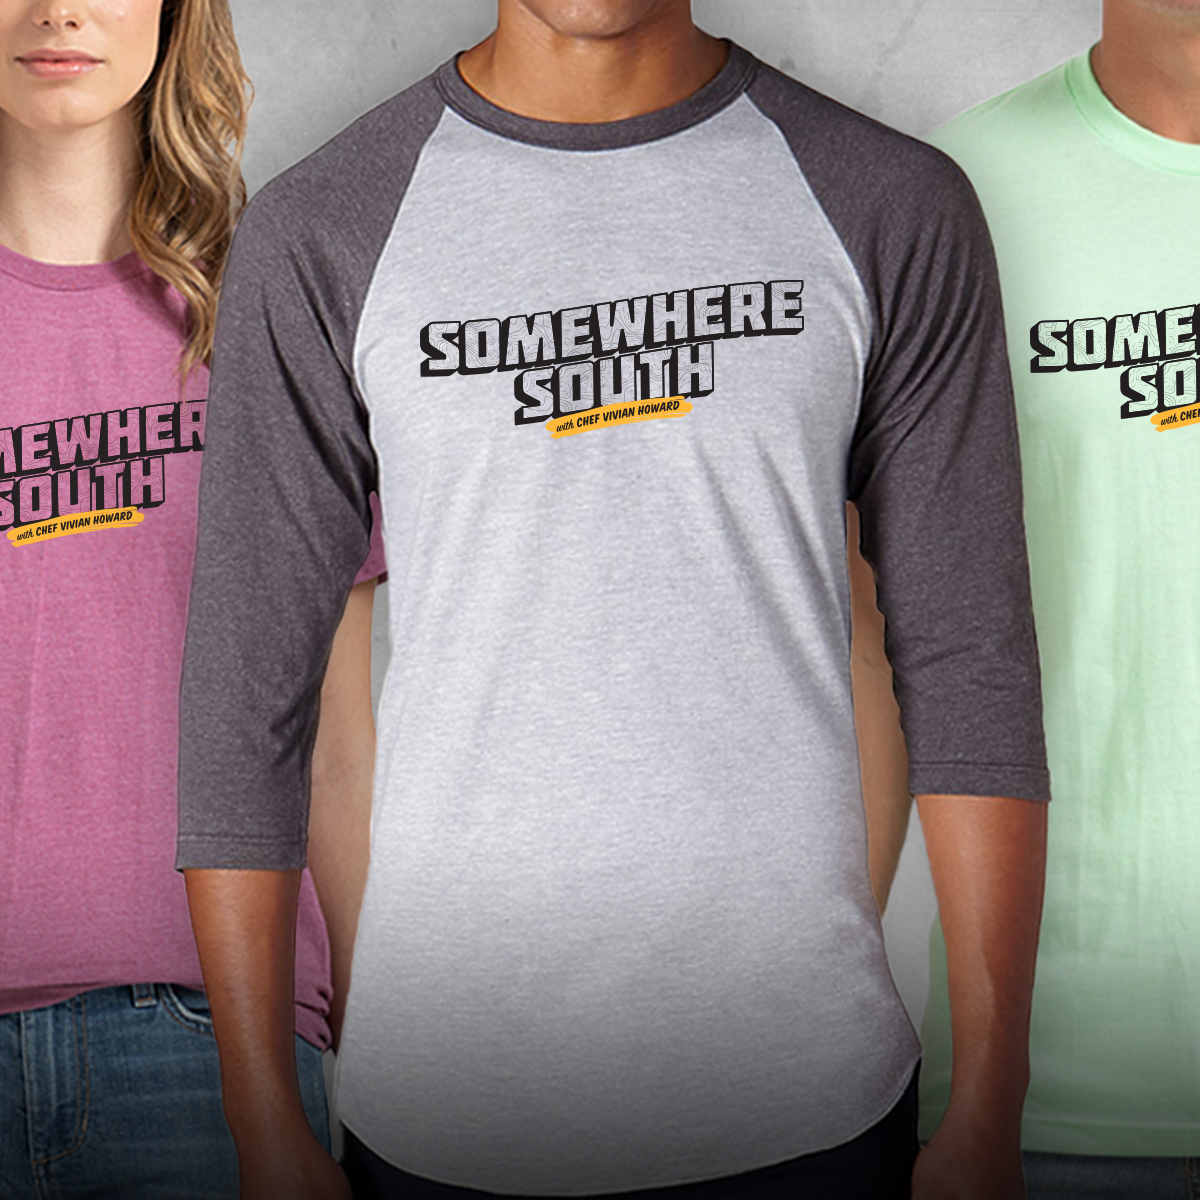 Get your hands on this limited run of Somewhere South tees before they're gone! 👉https://t.co/4LVjlB5ipZ  #SomewhereSouthPBS #merch https://t.co/RvWfzCZ2rM